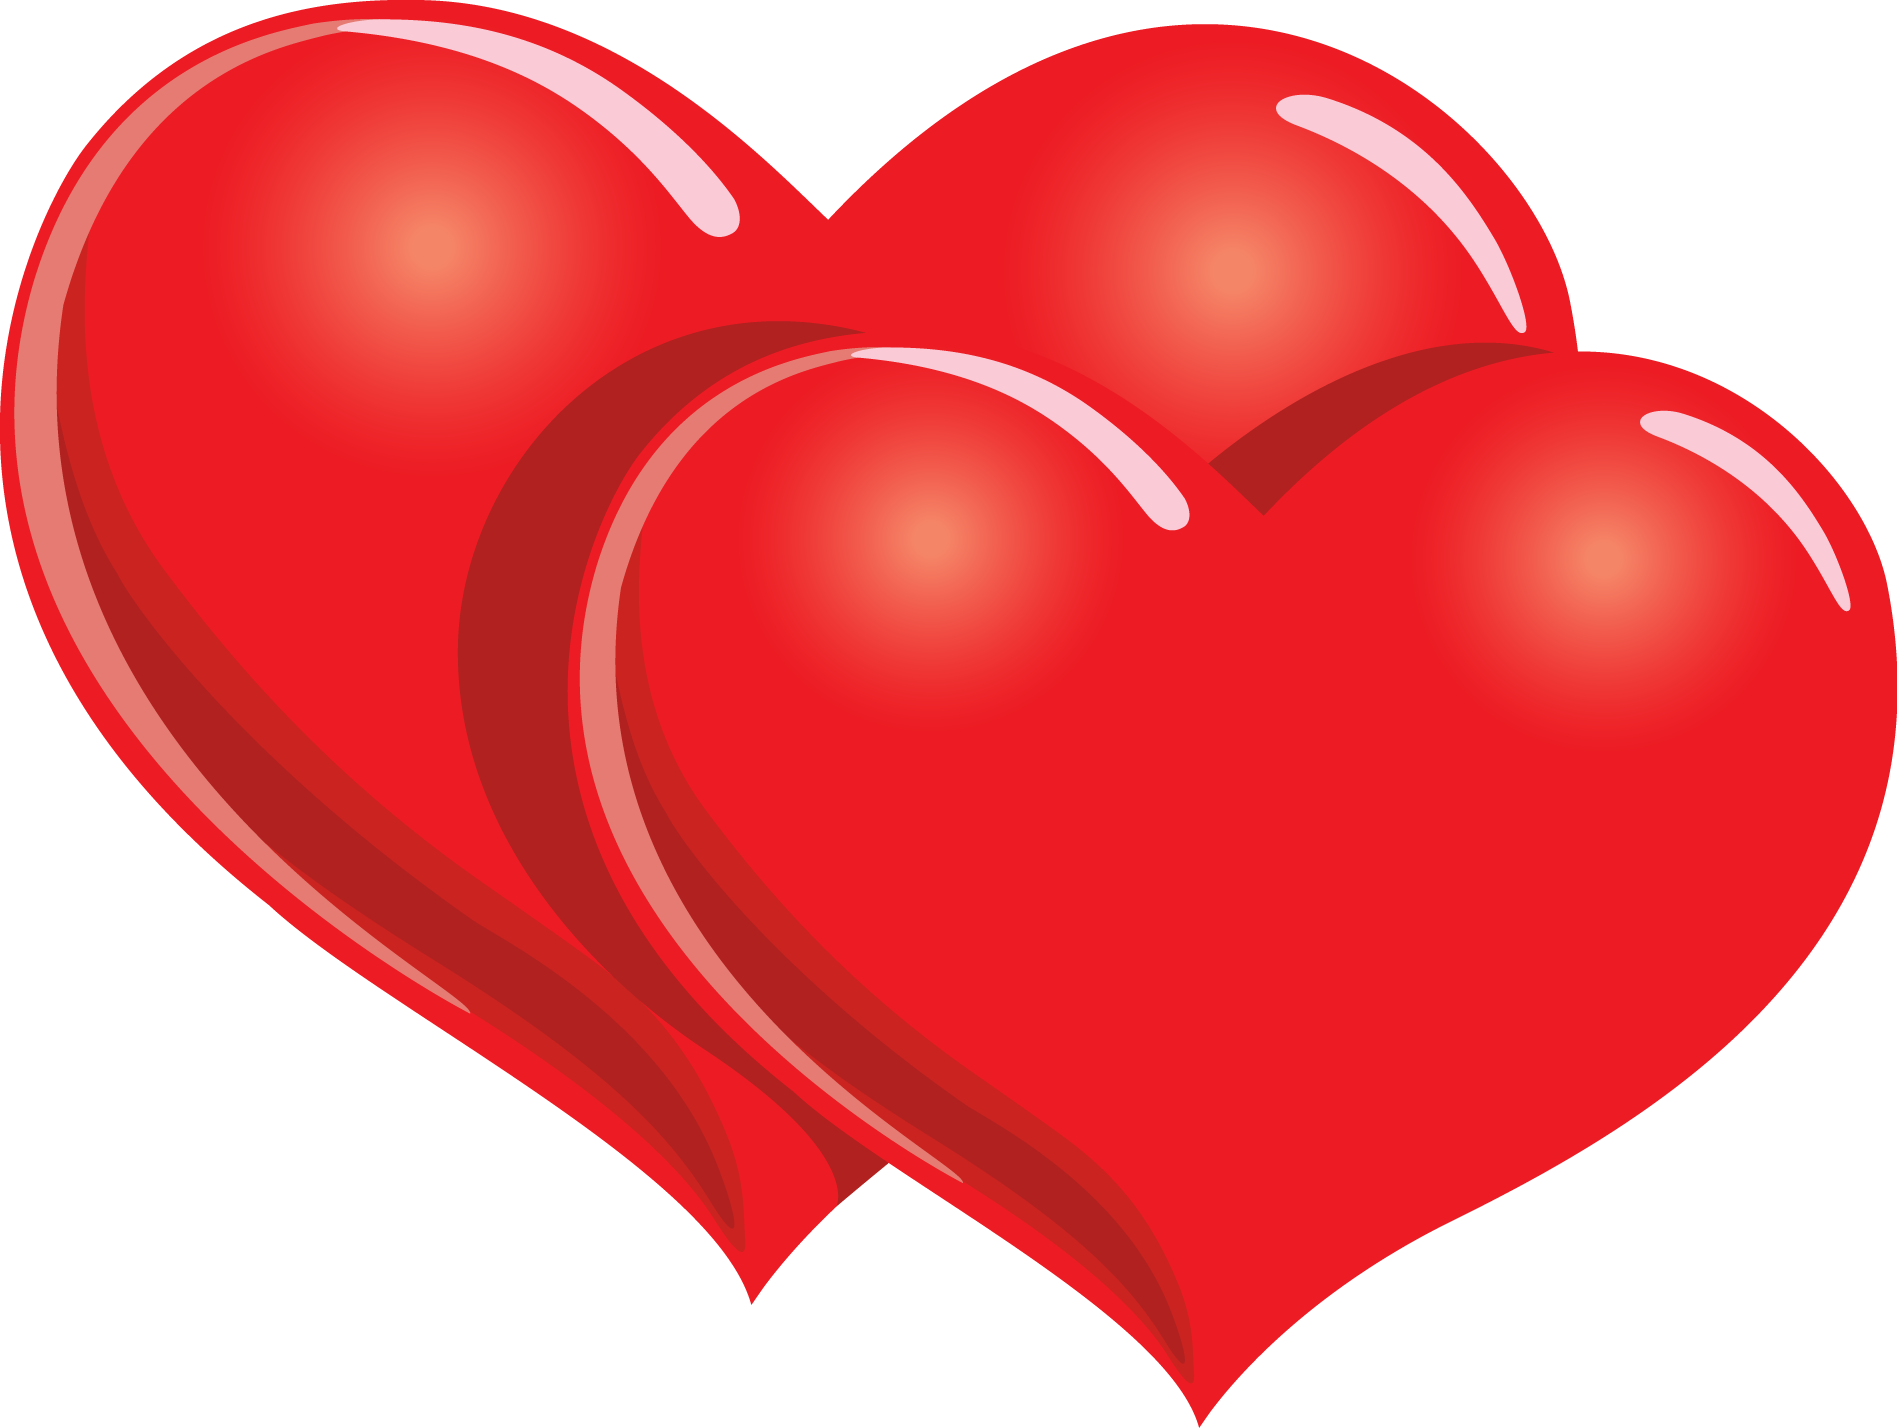 Valentines heart clipart image library library Heart Clipart at GetDrawings.com | Free for personal use Heart ... image library library